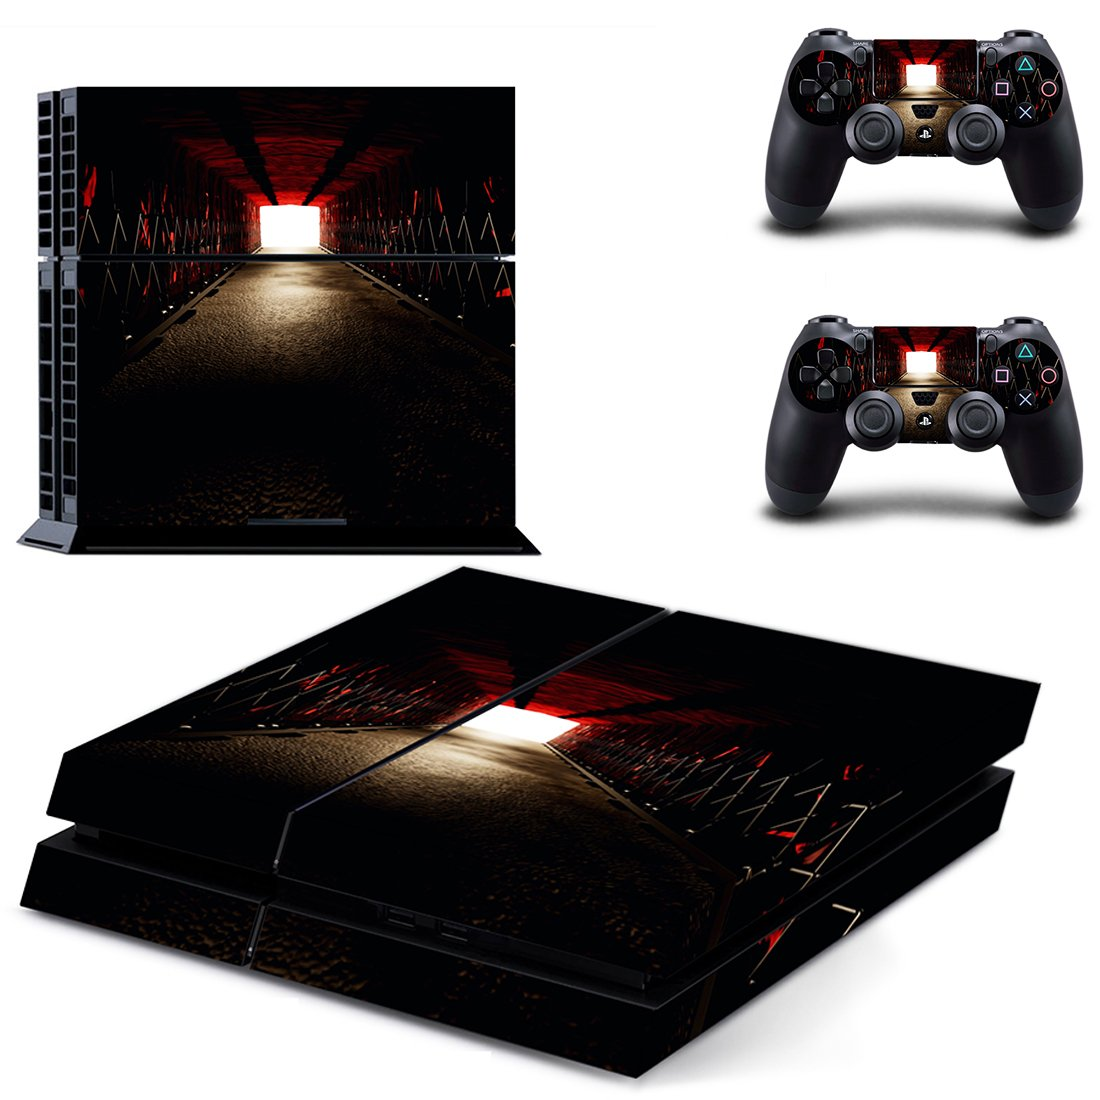 Dark Room skin decal for PS4 PlayStation 4 console and 2 controllers